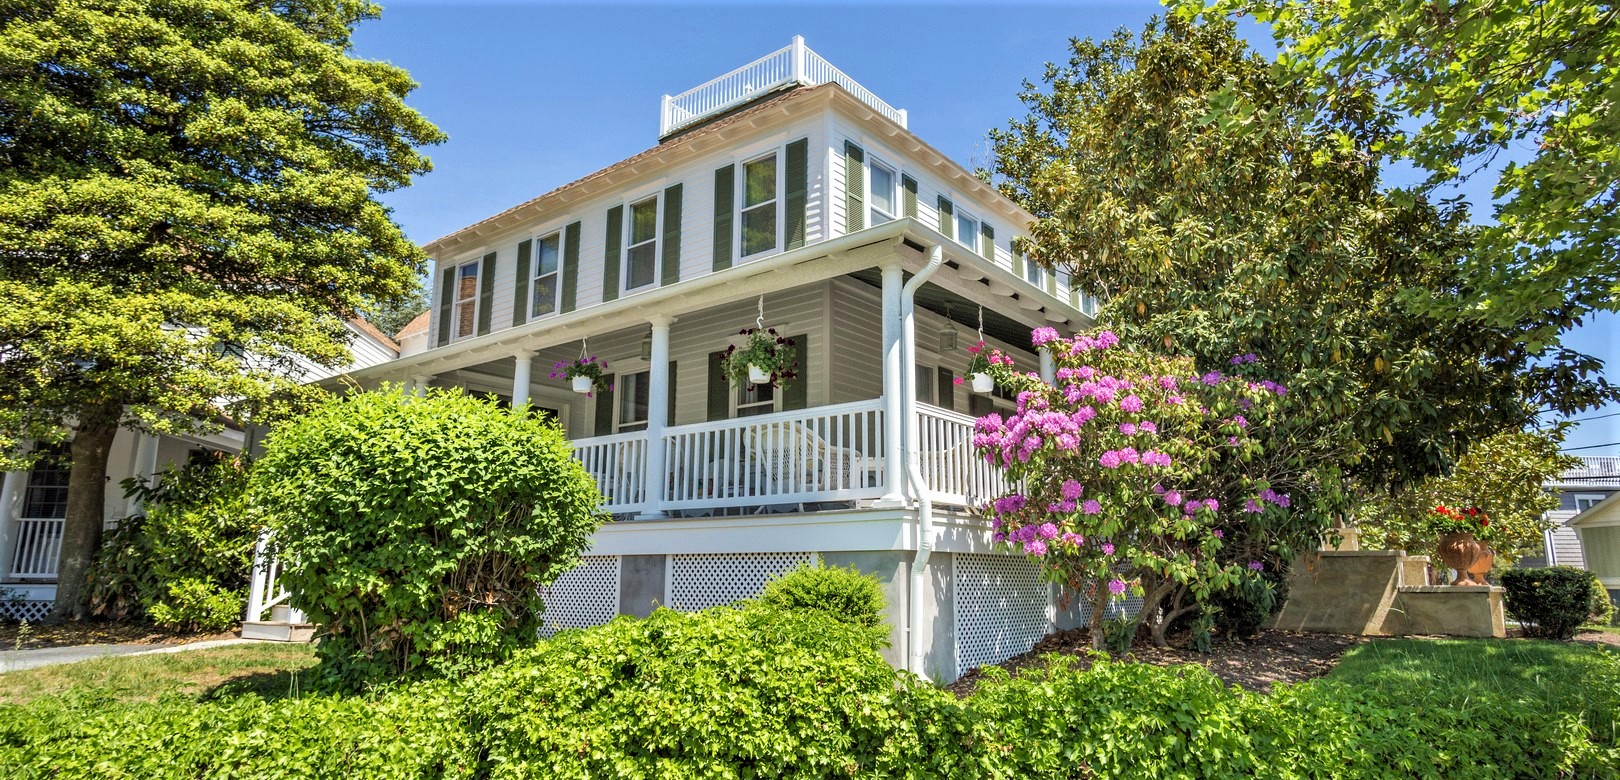 92 Sussex Street, Rehoboth Beach : UNDER CONTRACT! $1,695,000